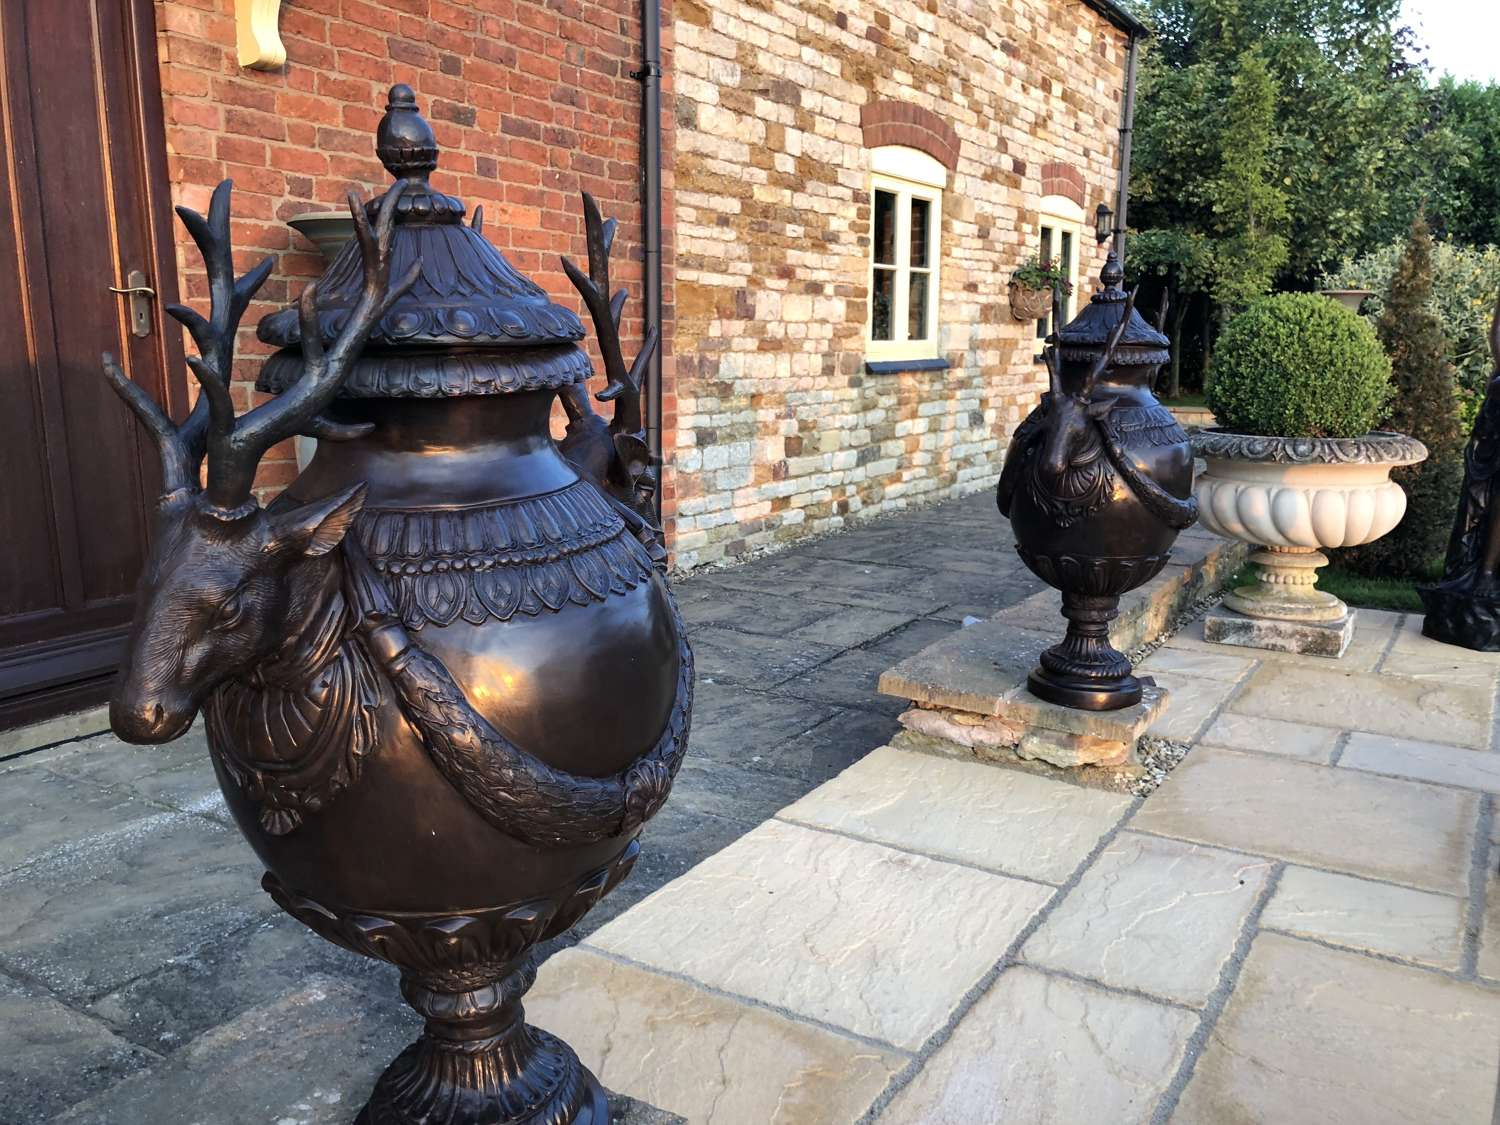 Pair of bronze stag head vases - bronze stag urns